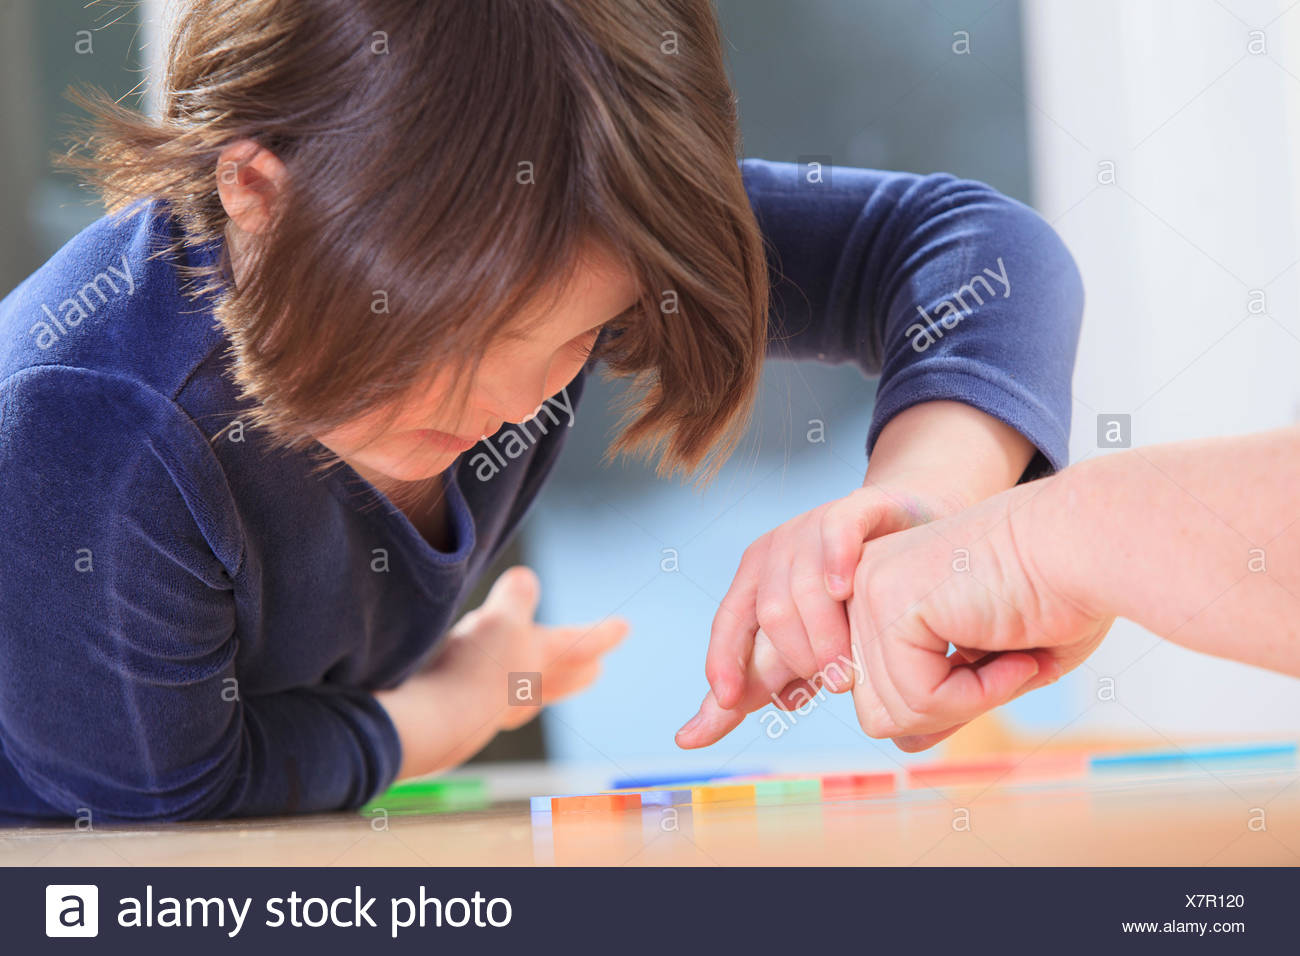 Little girl with Down Syndrome playing a learning game with her Mom Stock Photo